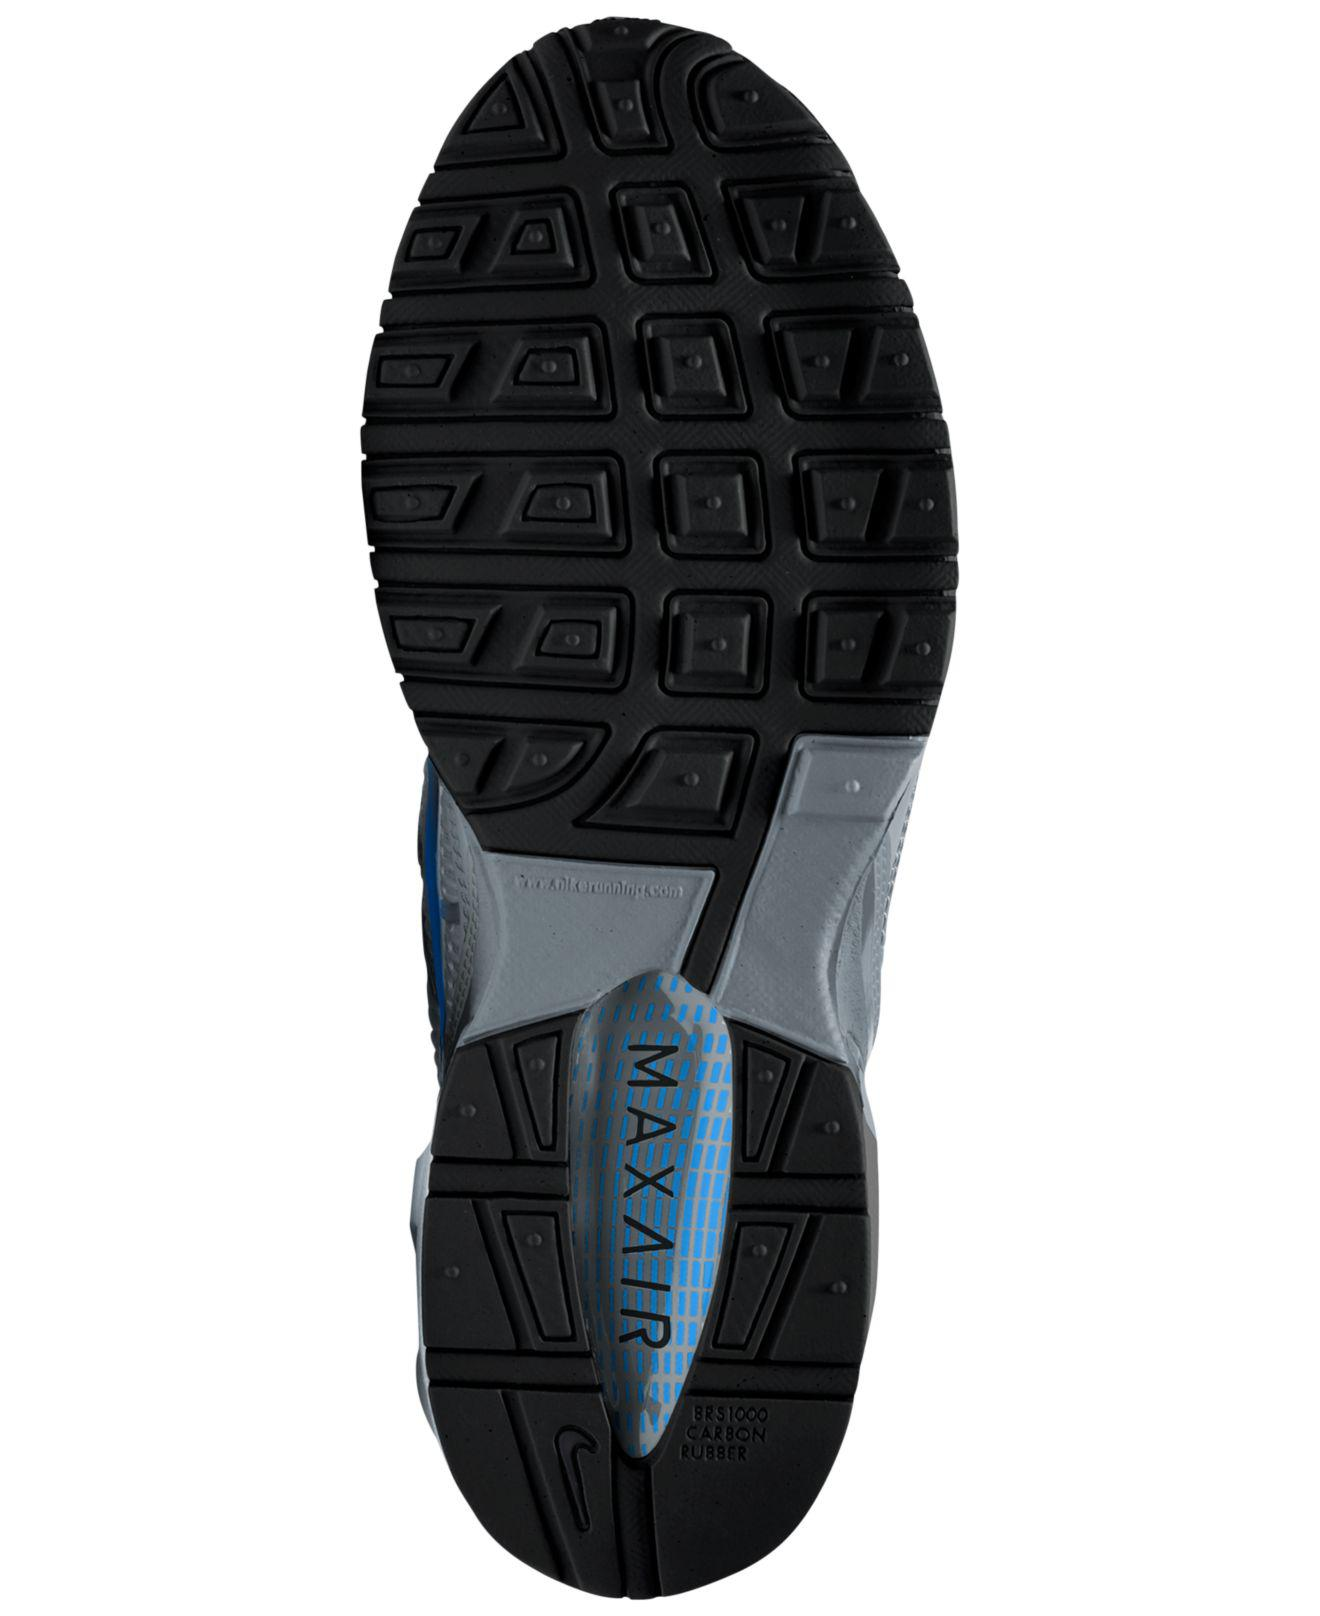 7ed37993c10 Nike - Blue Air Max Torch 4 Running Sneakers From Finish Line for Men -  Lyst. View fullscreen